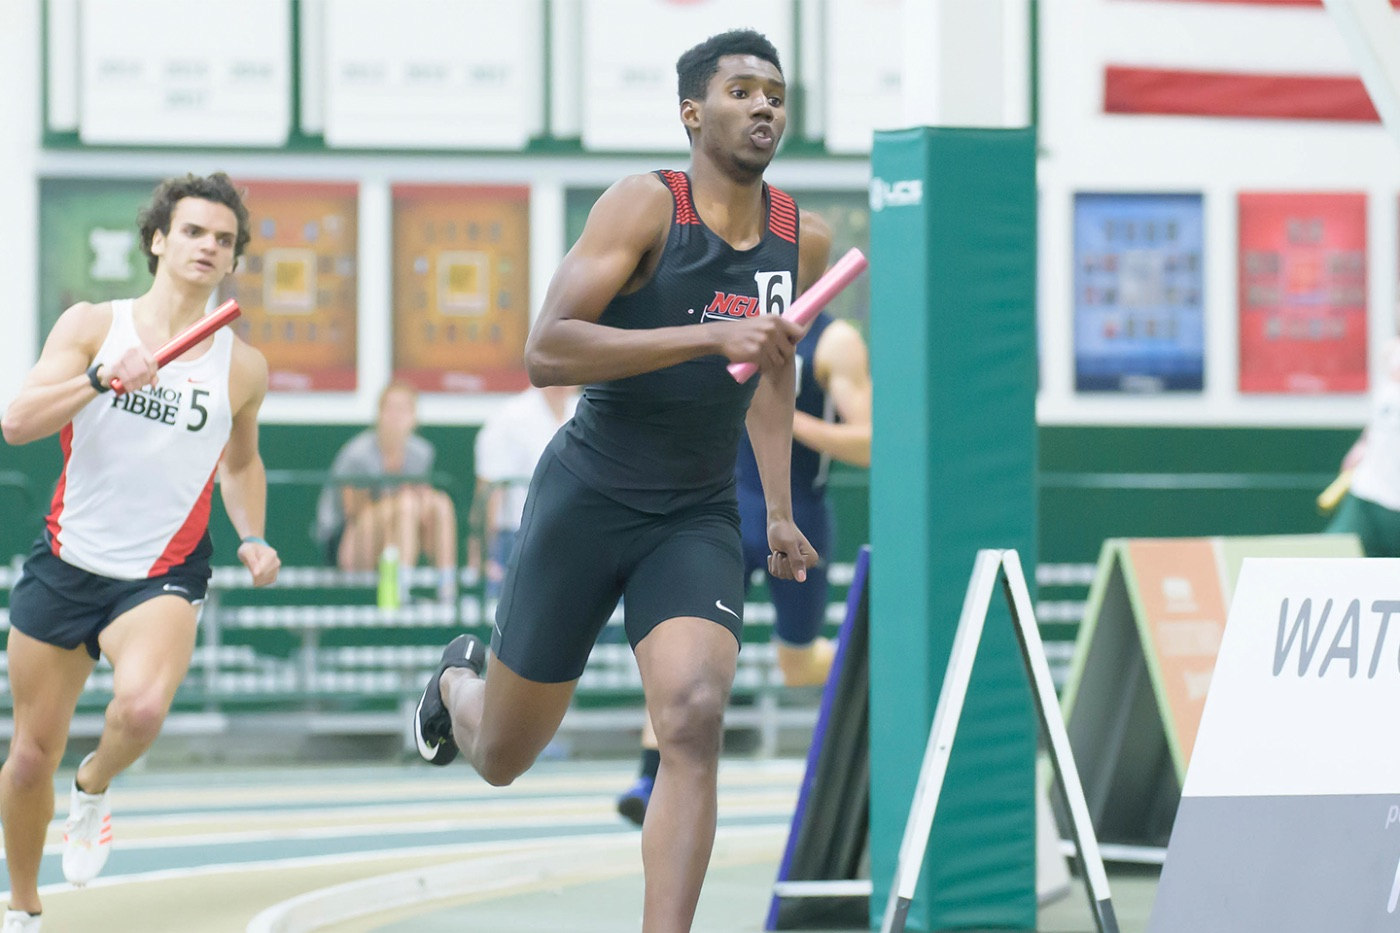 Richardson ran his final 200-meter race of the indoor calendar and clocked a time of 21.60-seconds at the prelims for the NCAA Division II National Championships.